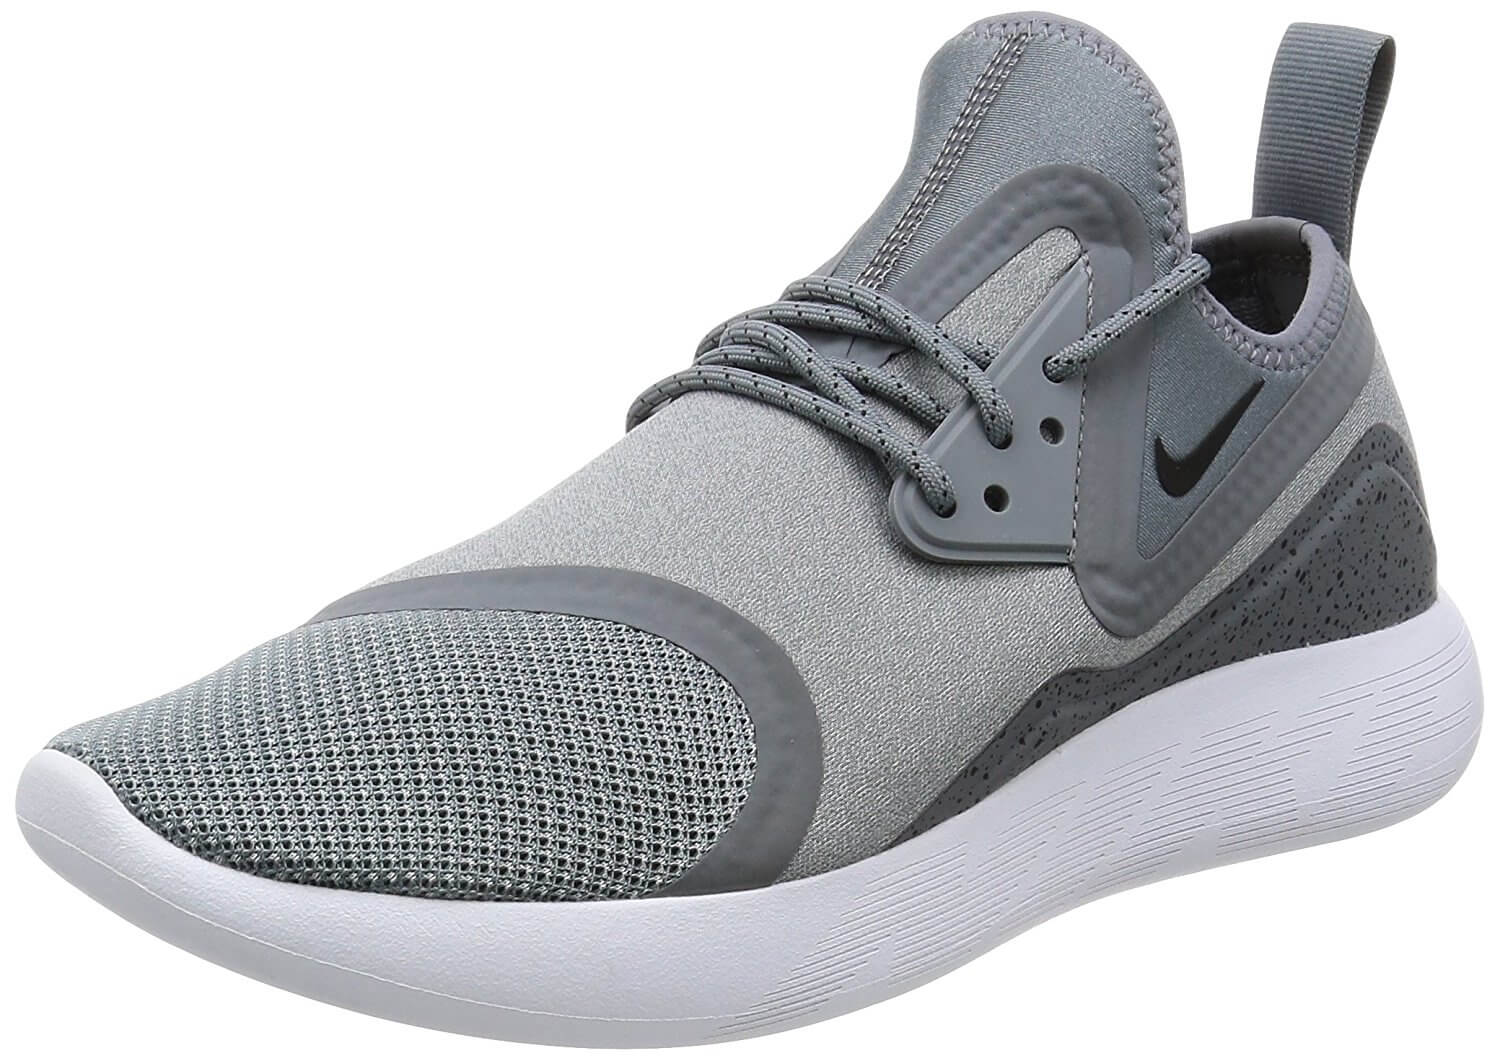 9a154cb113 Nike LunarCharge Essential - To Buy or Not in June 2019?